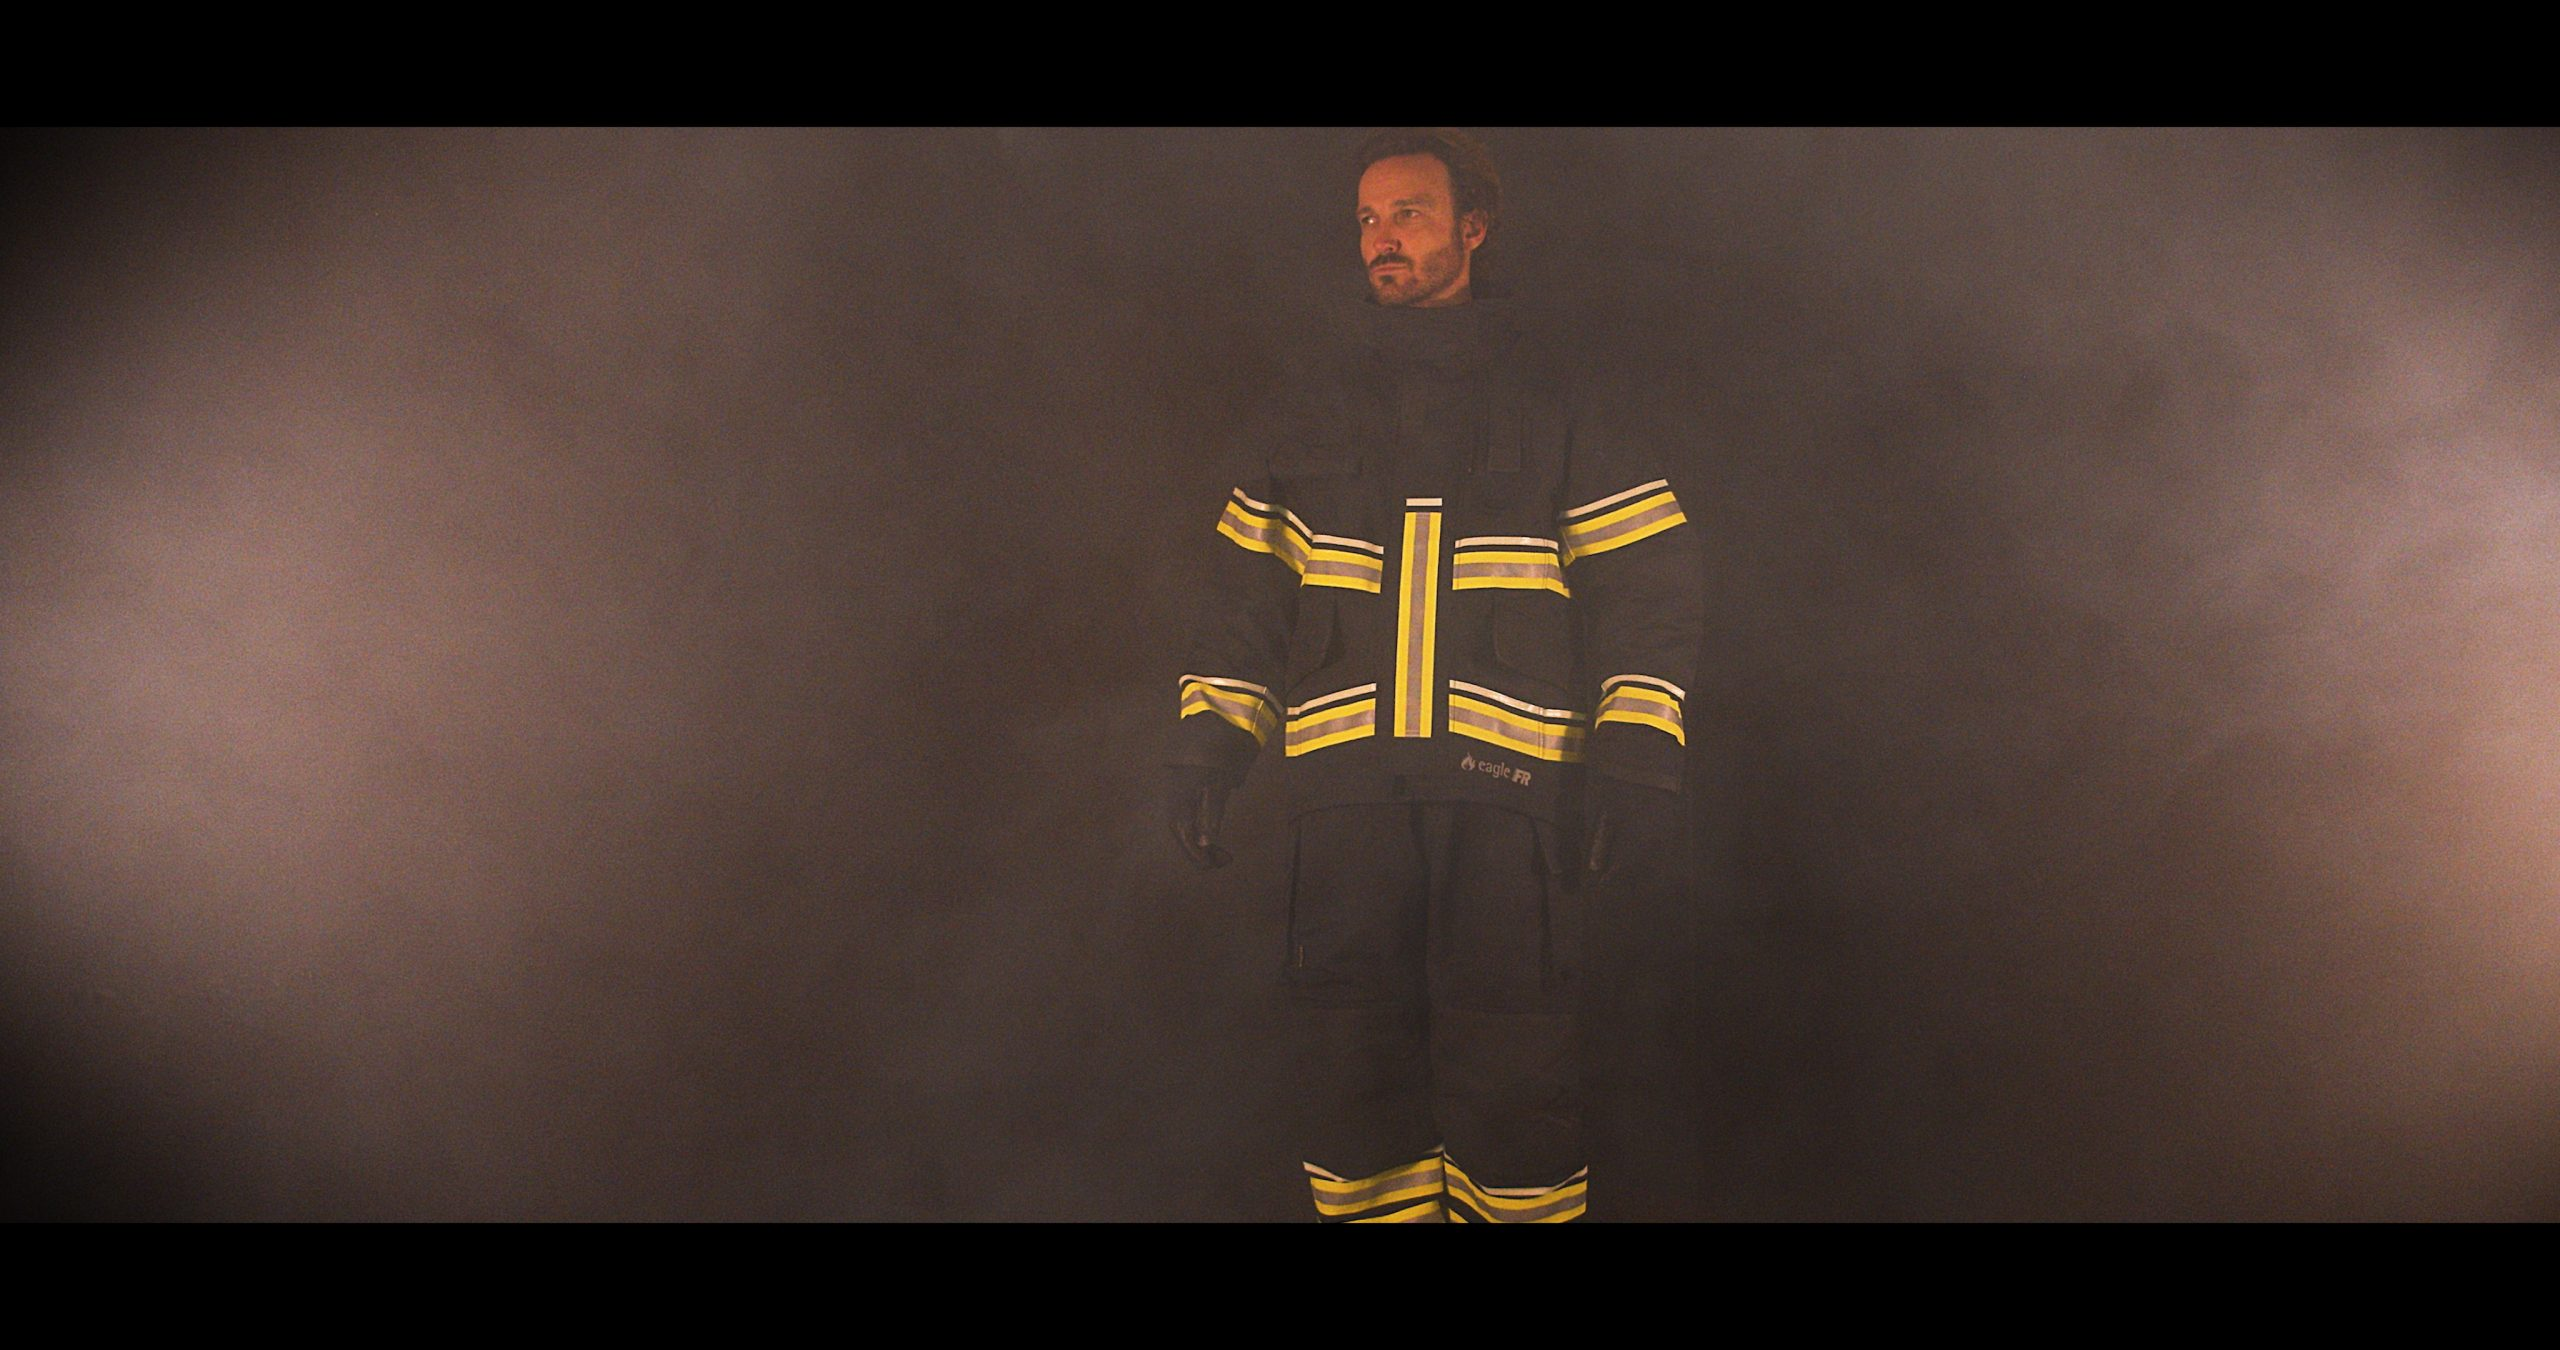 Eagle Enforcer Fire Suit featuring Nomex Twin System with NightGlow Technology